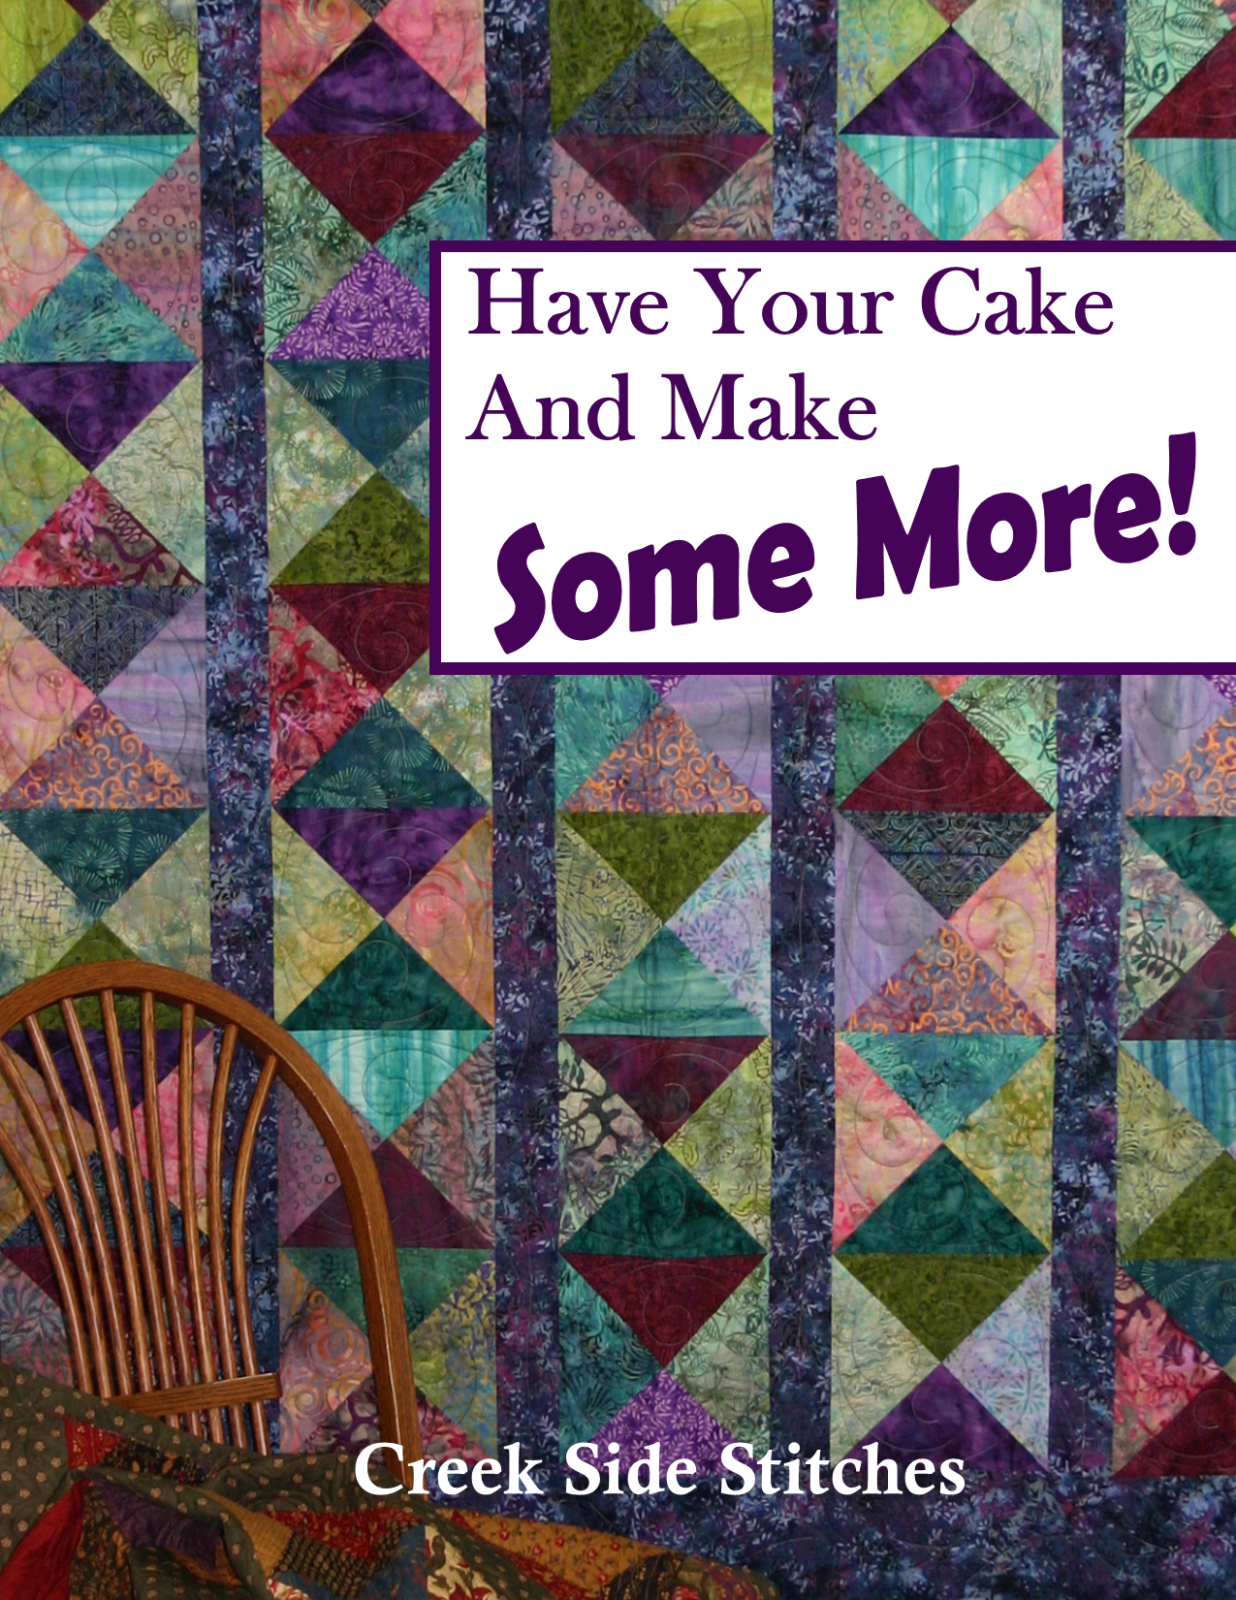 Have Your Cake and Make Some More!